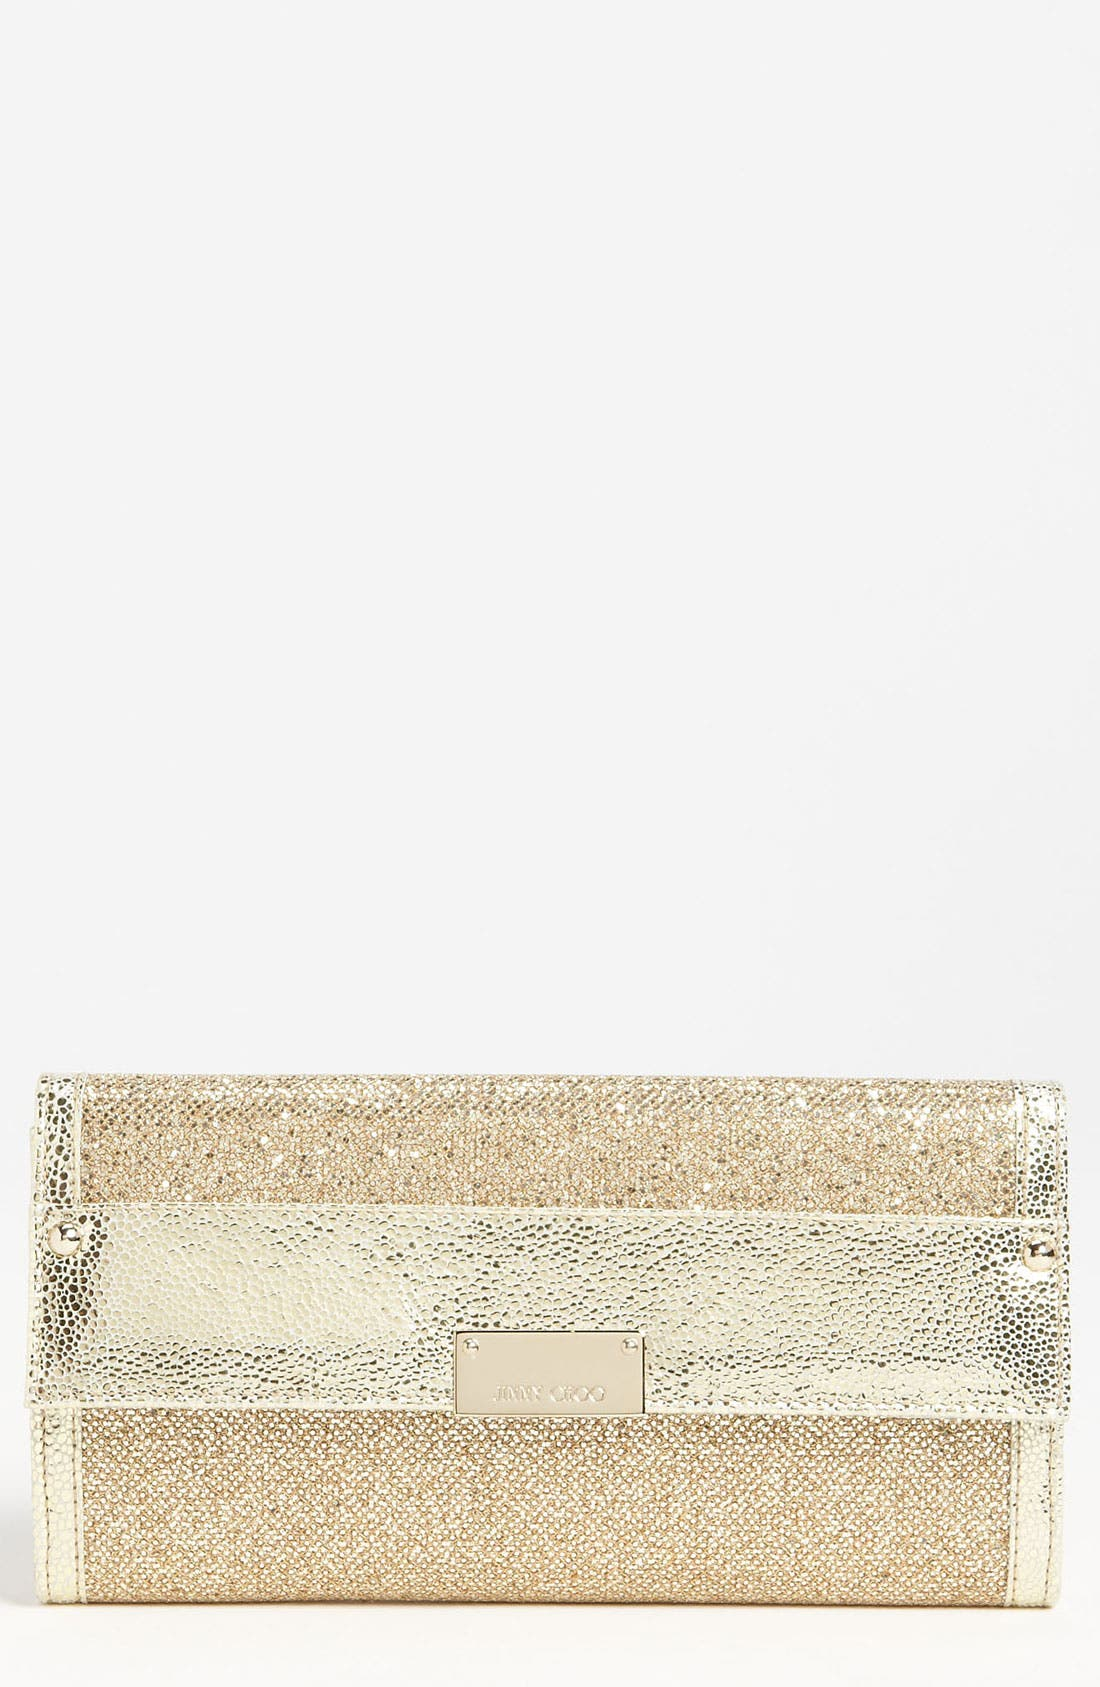 Main Image - Jimmy Choo 'Reese' Clutch